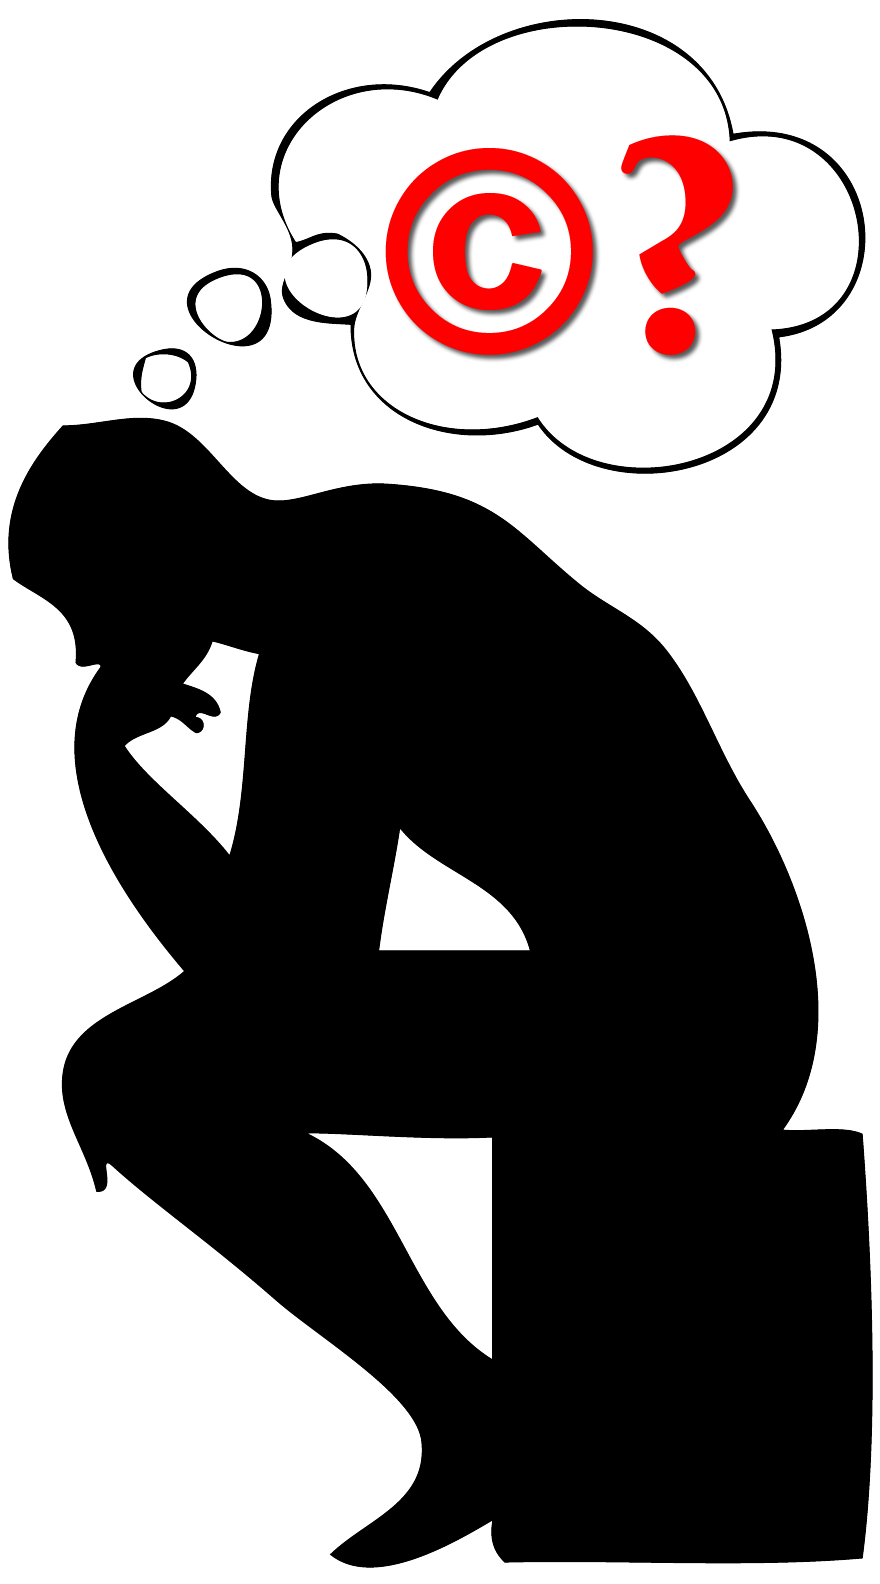 thinker-02-copyright.png